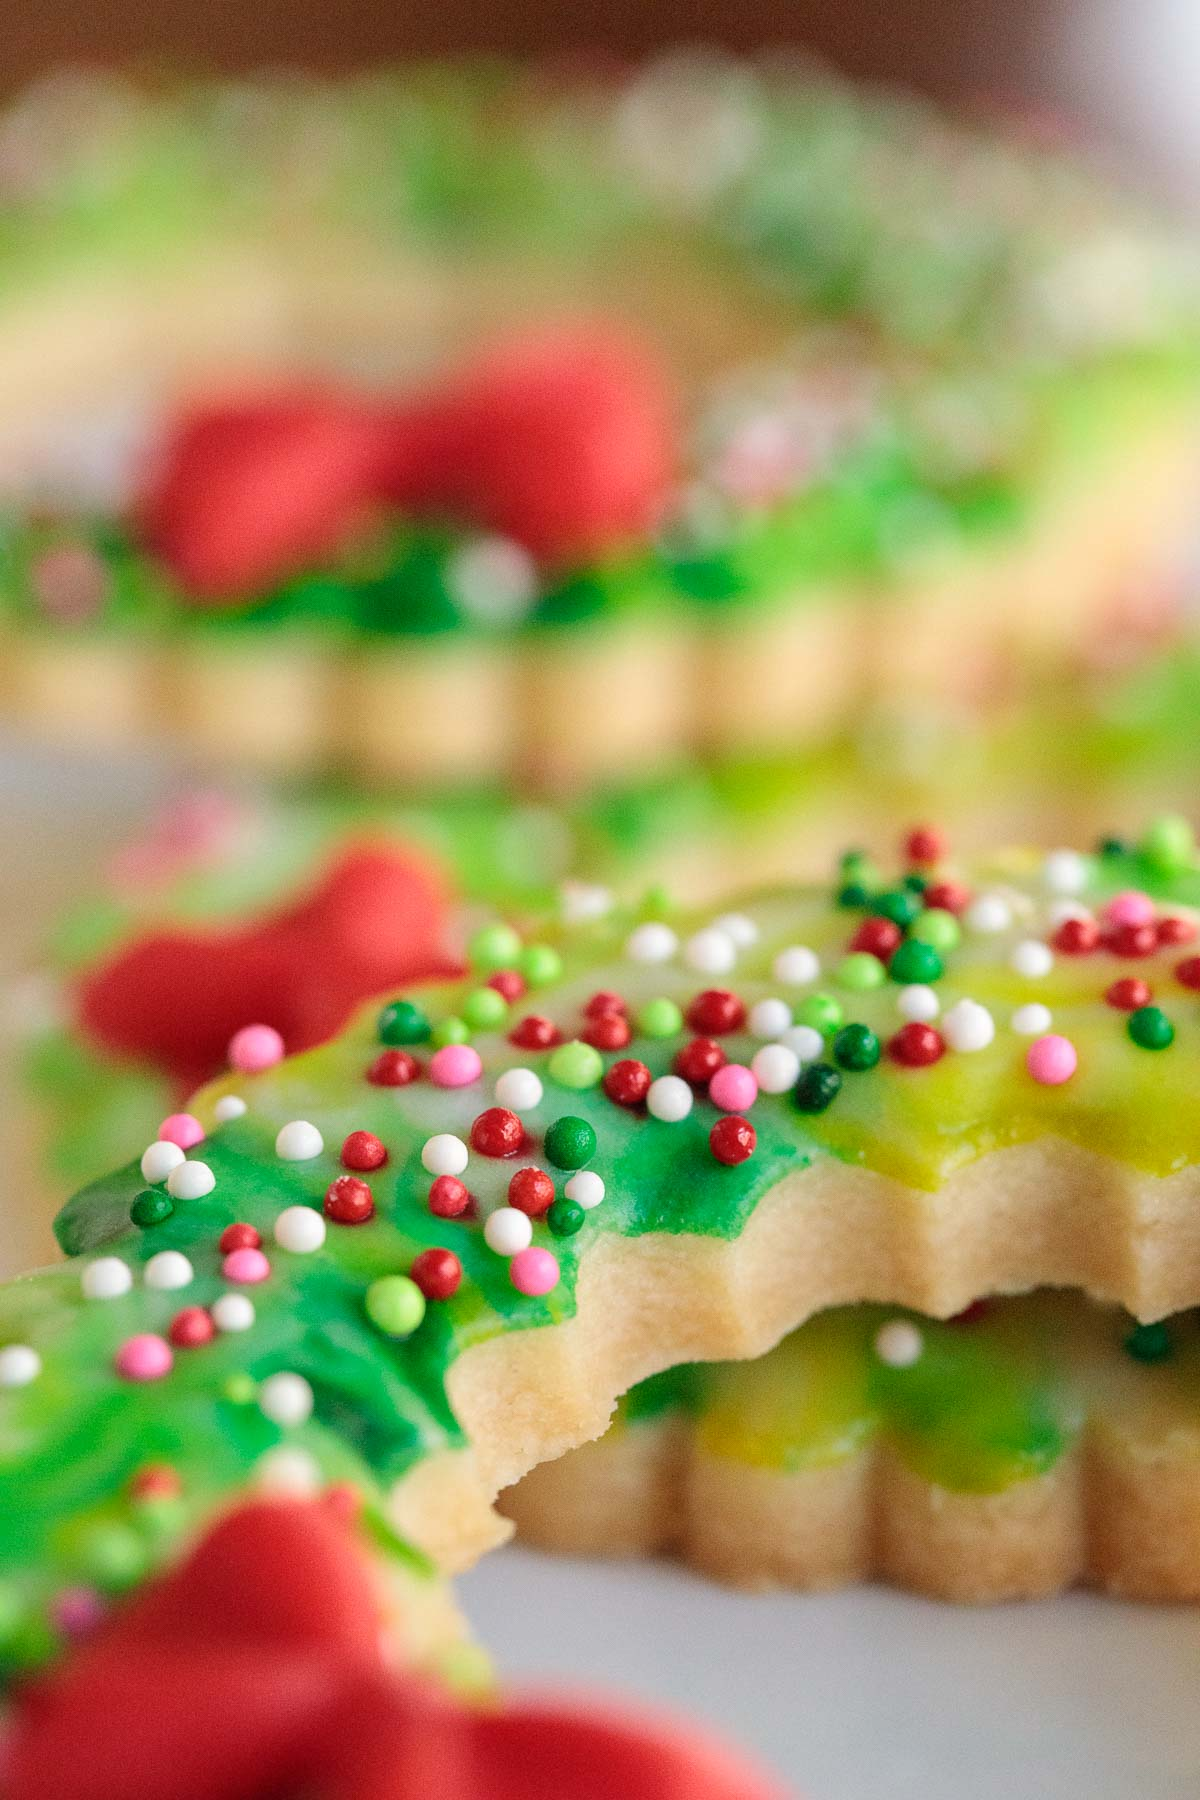 Extreme closeup photo of the sides of several Christmas Wreath Shortbread Cookies.